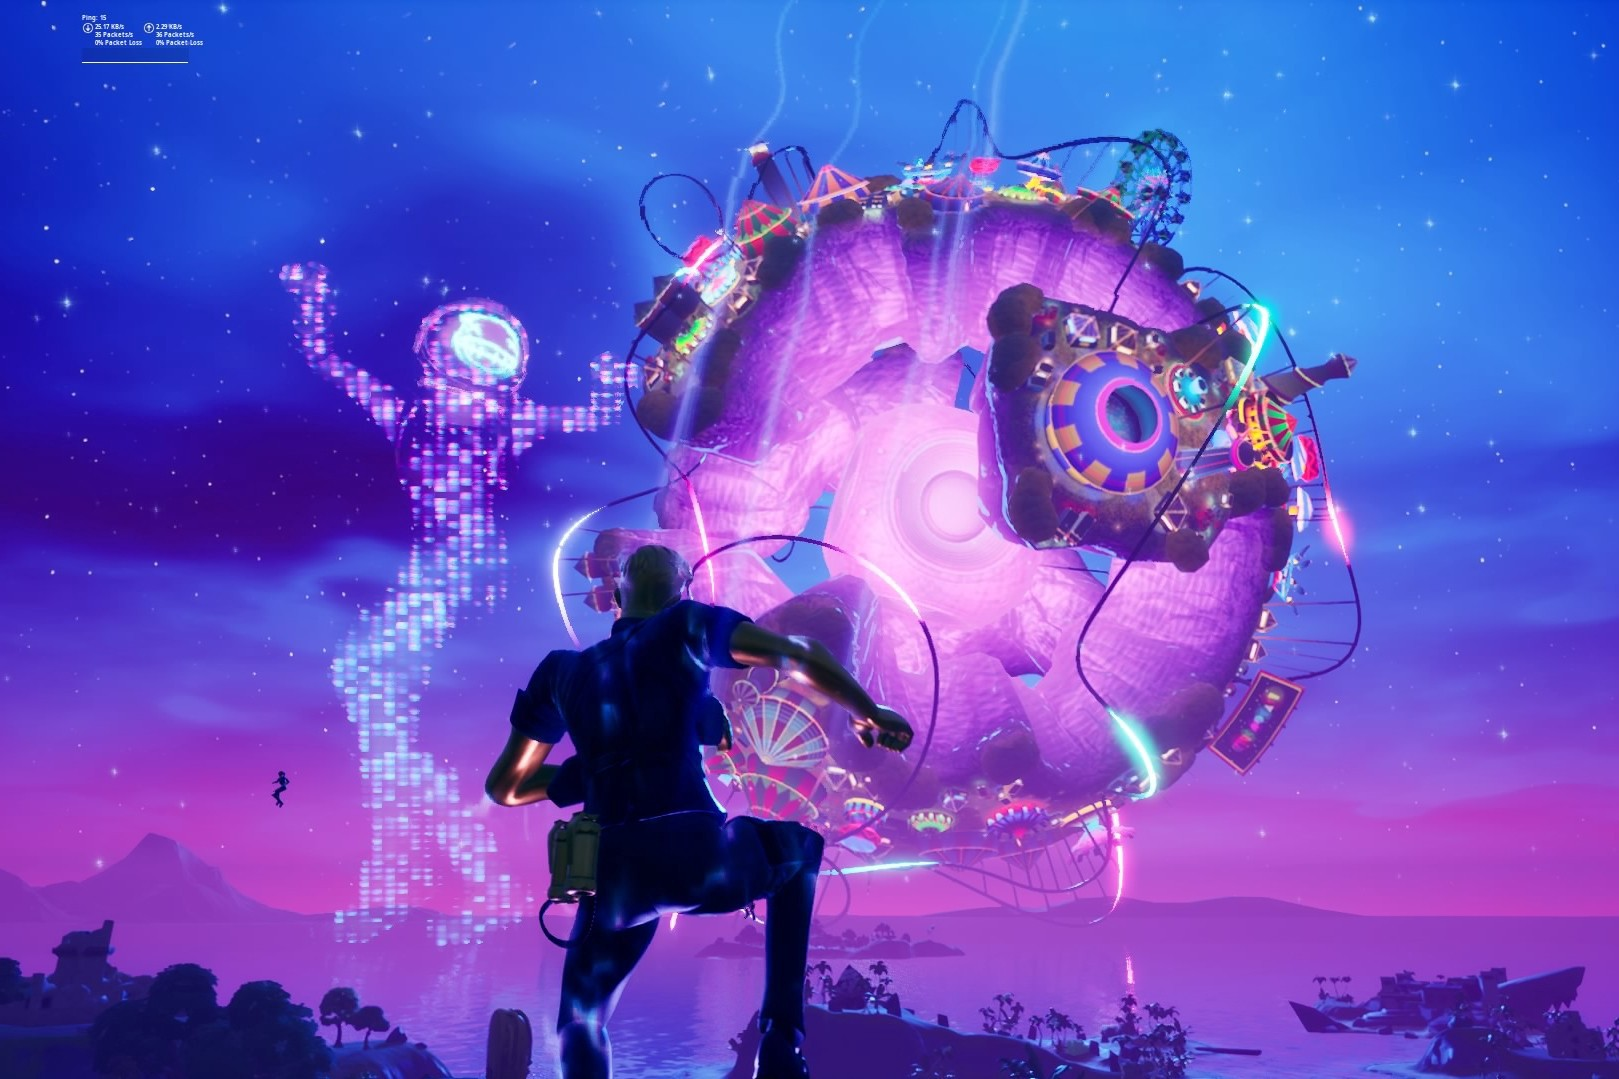 The Economy of the Metaverse | Interview with Epic CEO Tim Sweeney